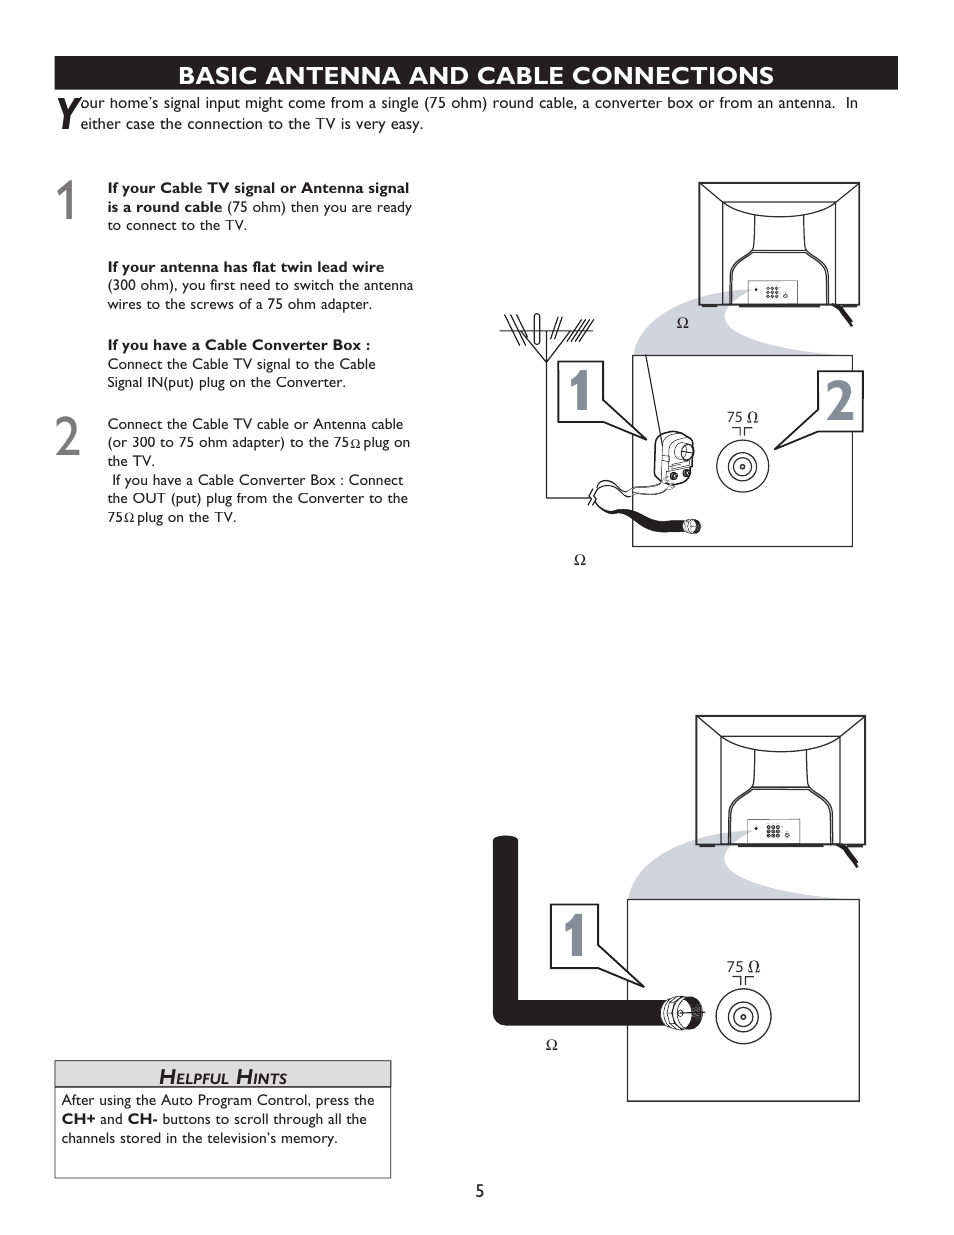 Basic antenna and cable connections   Philips Magnavox 20MT4405 User Manual    Page 5 / 34